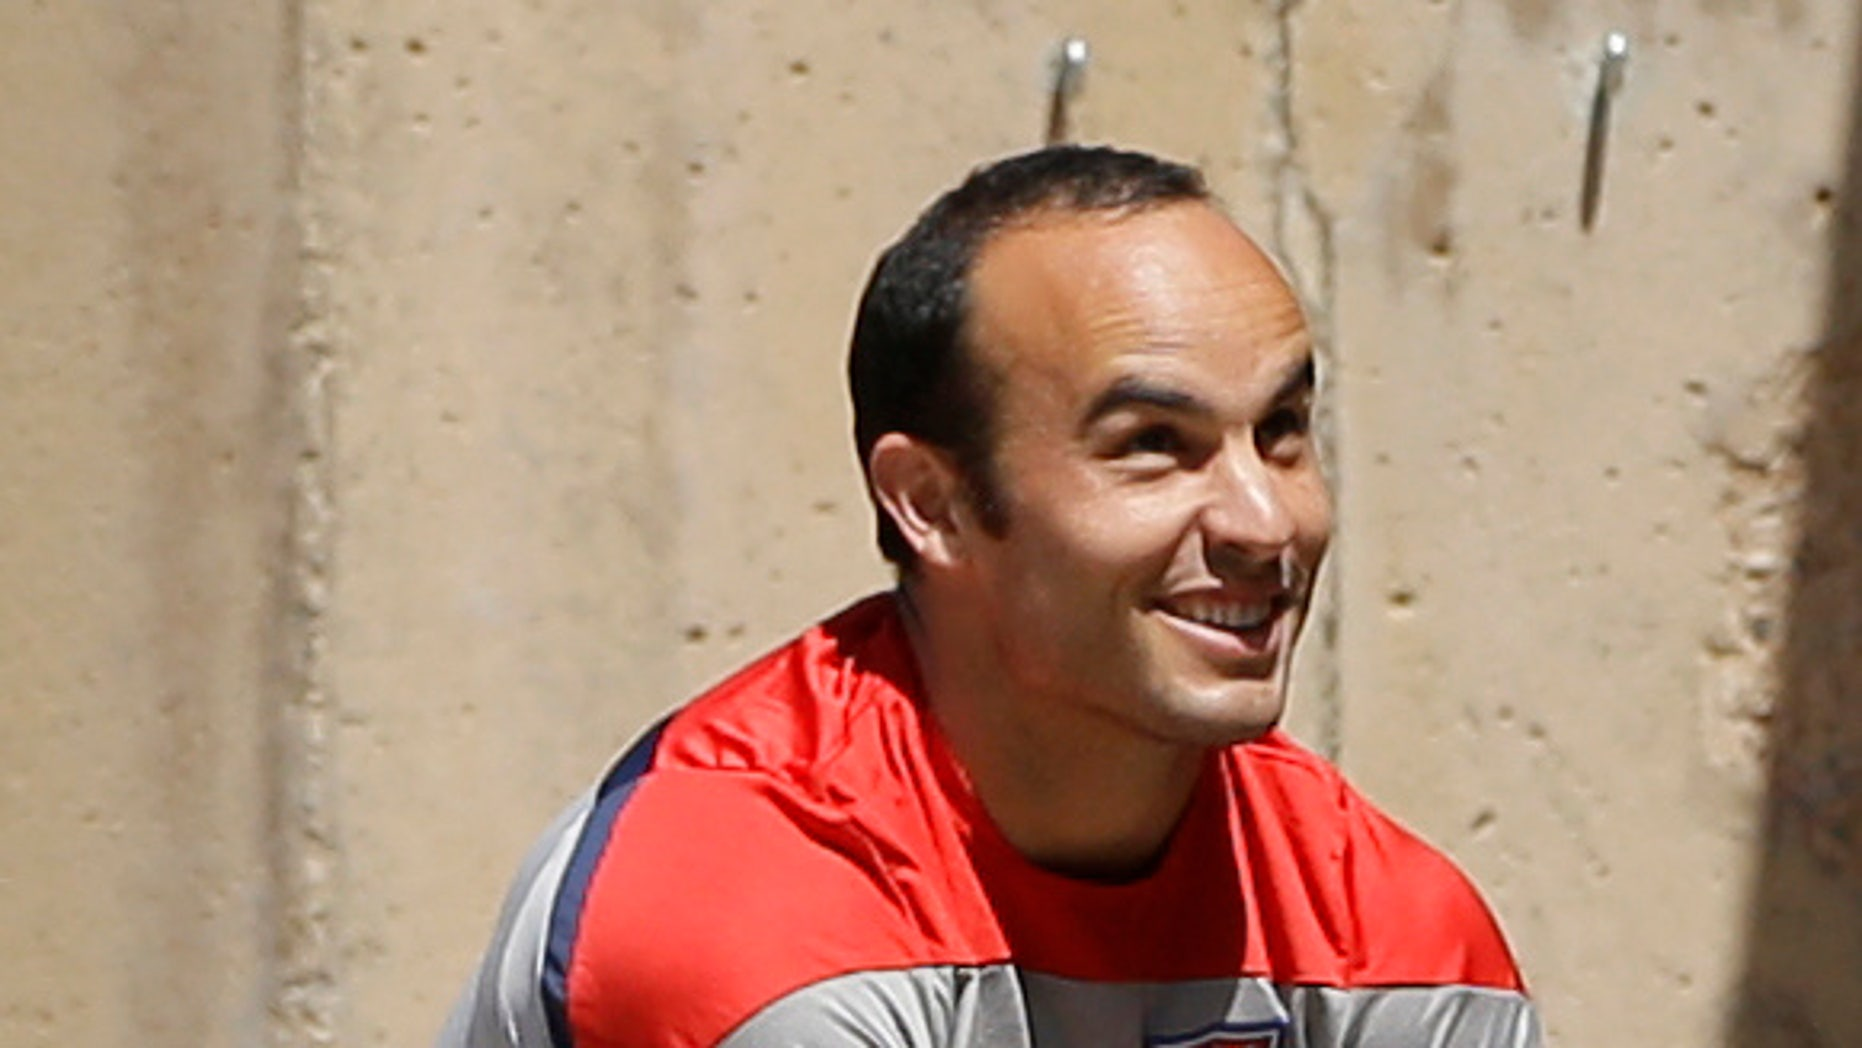 U.S. forward Landon Donovan stretches prior to practice for the World Cup soccer tournament Thursday, May 22, 2014, in Stanford, Calif. Donovan was cut from the roster later Thursday for the World Cup. (AP Photo/Ben Margot)